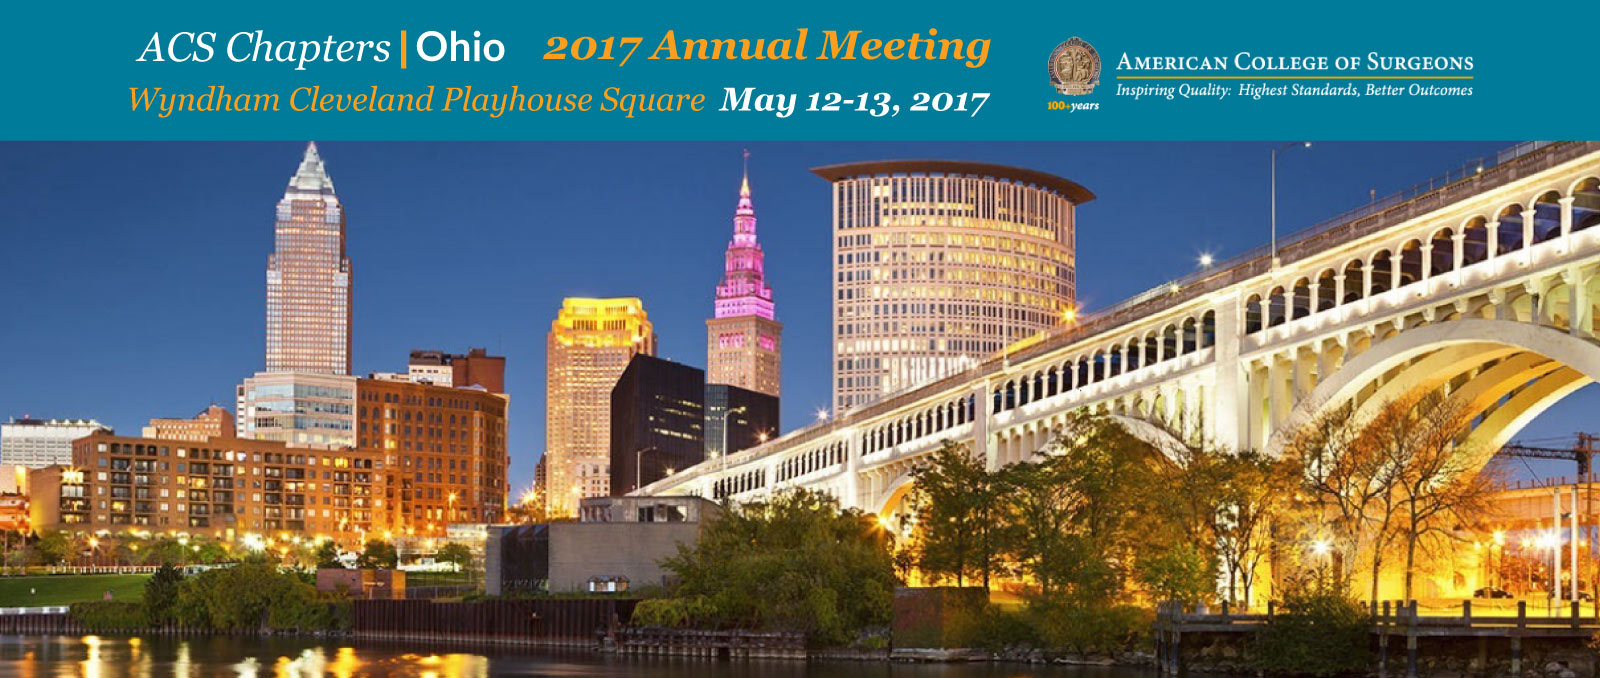 2017 annual meeting at Wyndham Cleveland Playhouse Square May 12 - 13 2017